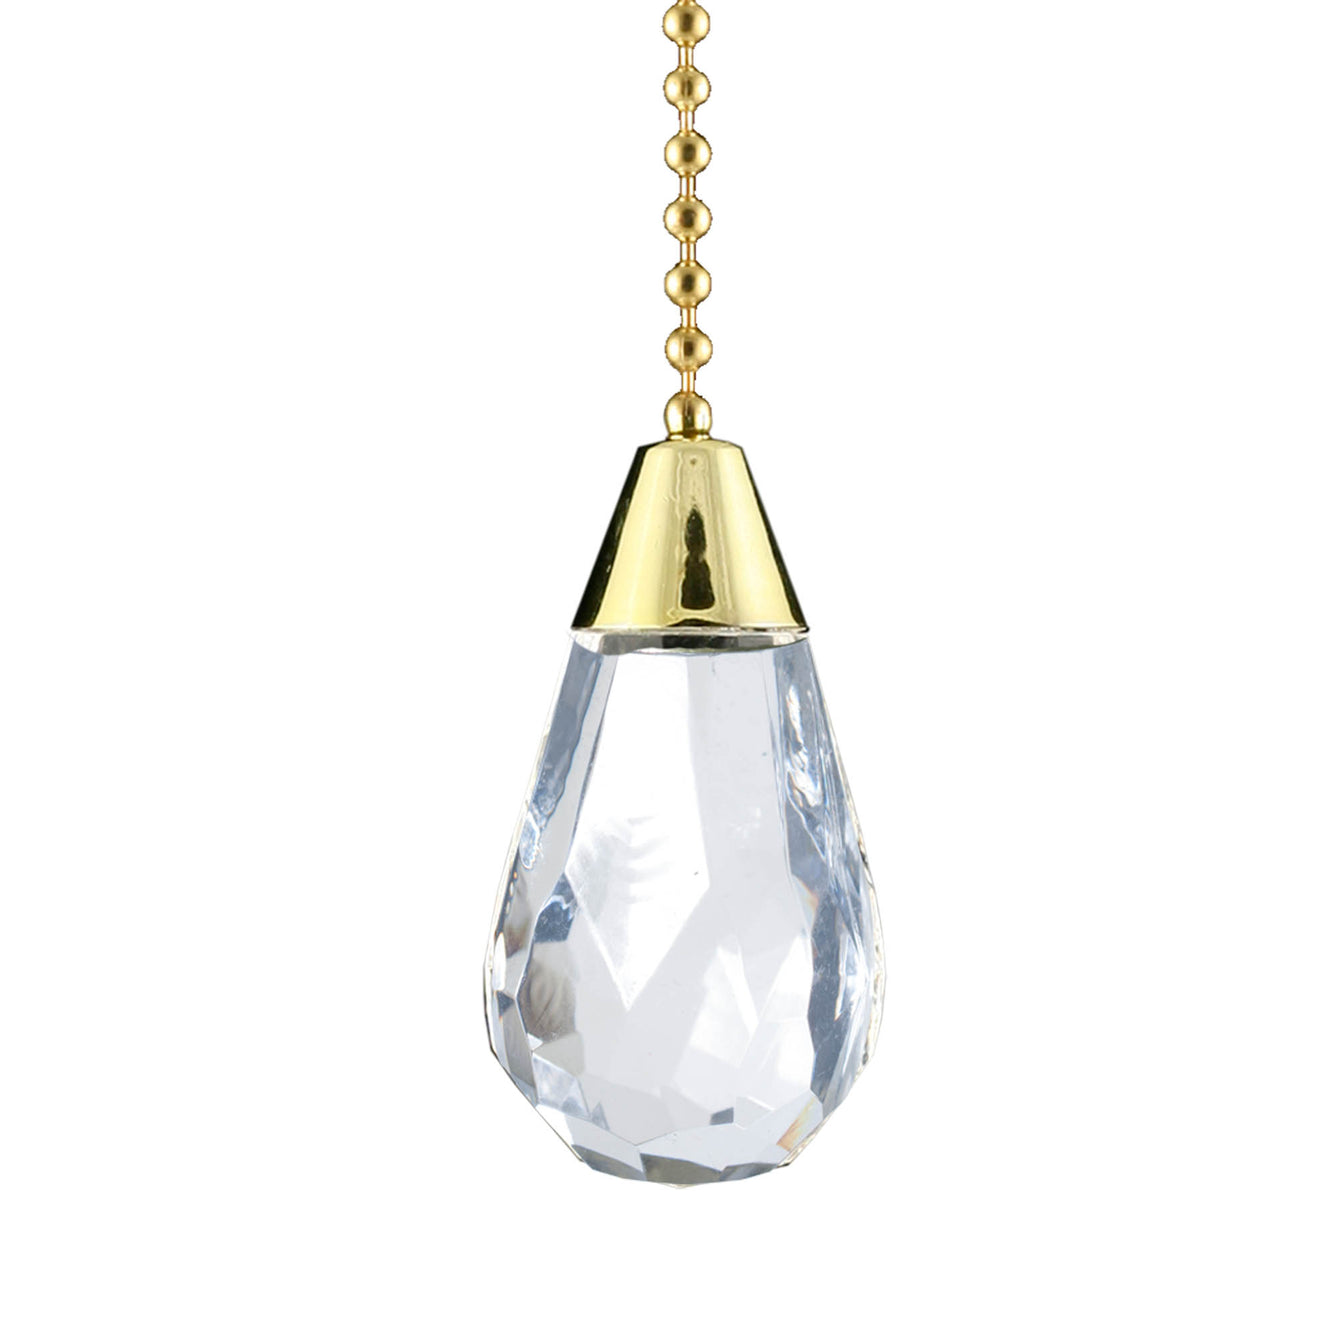 ElekTek Light Pull Chain Cord Brass Acrylic Crystal Facets With 80cm Matching Chain - Buy It Better Cylinder